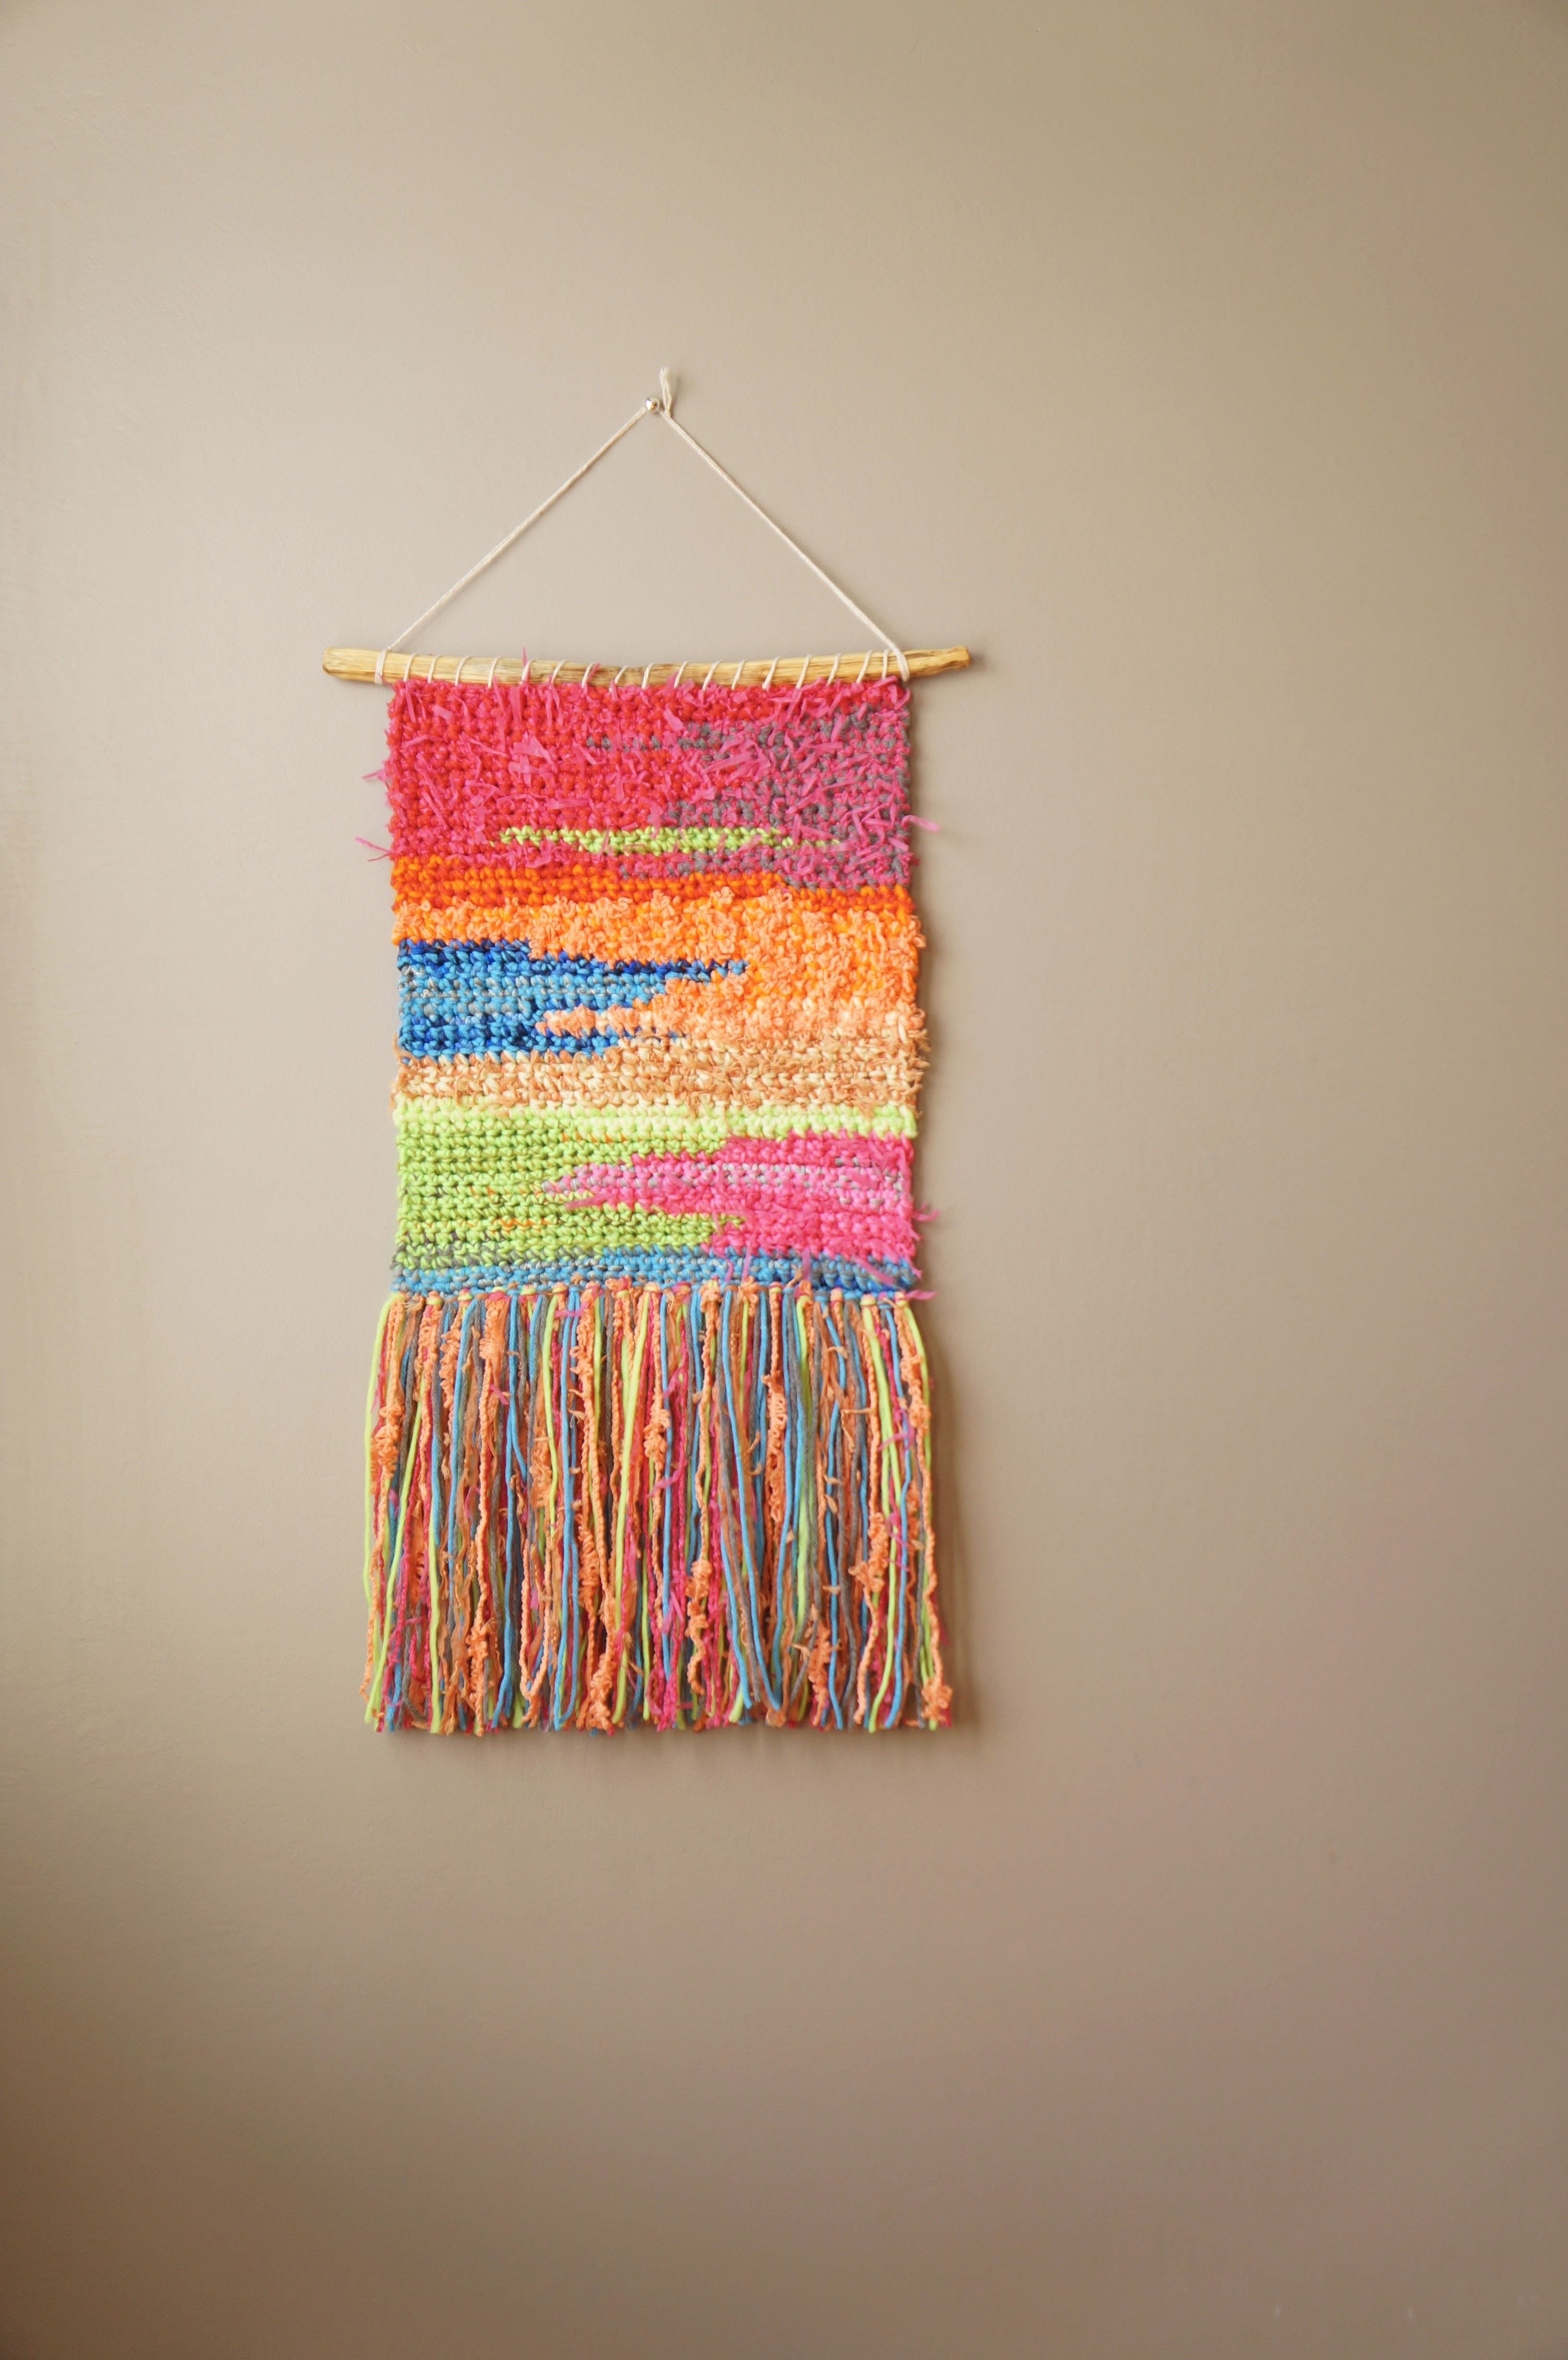 Sunset Series Inspired Modern Tapestry Wall Hanging By Lemon Cucullu